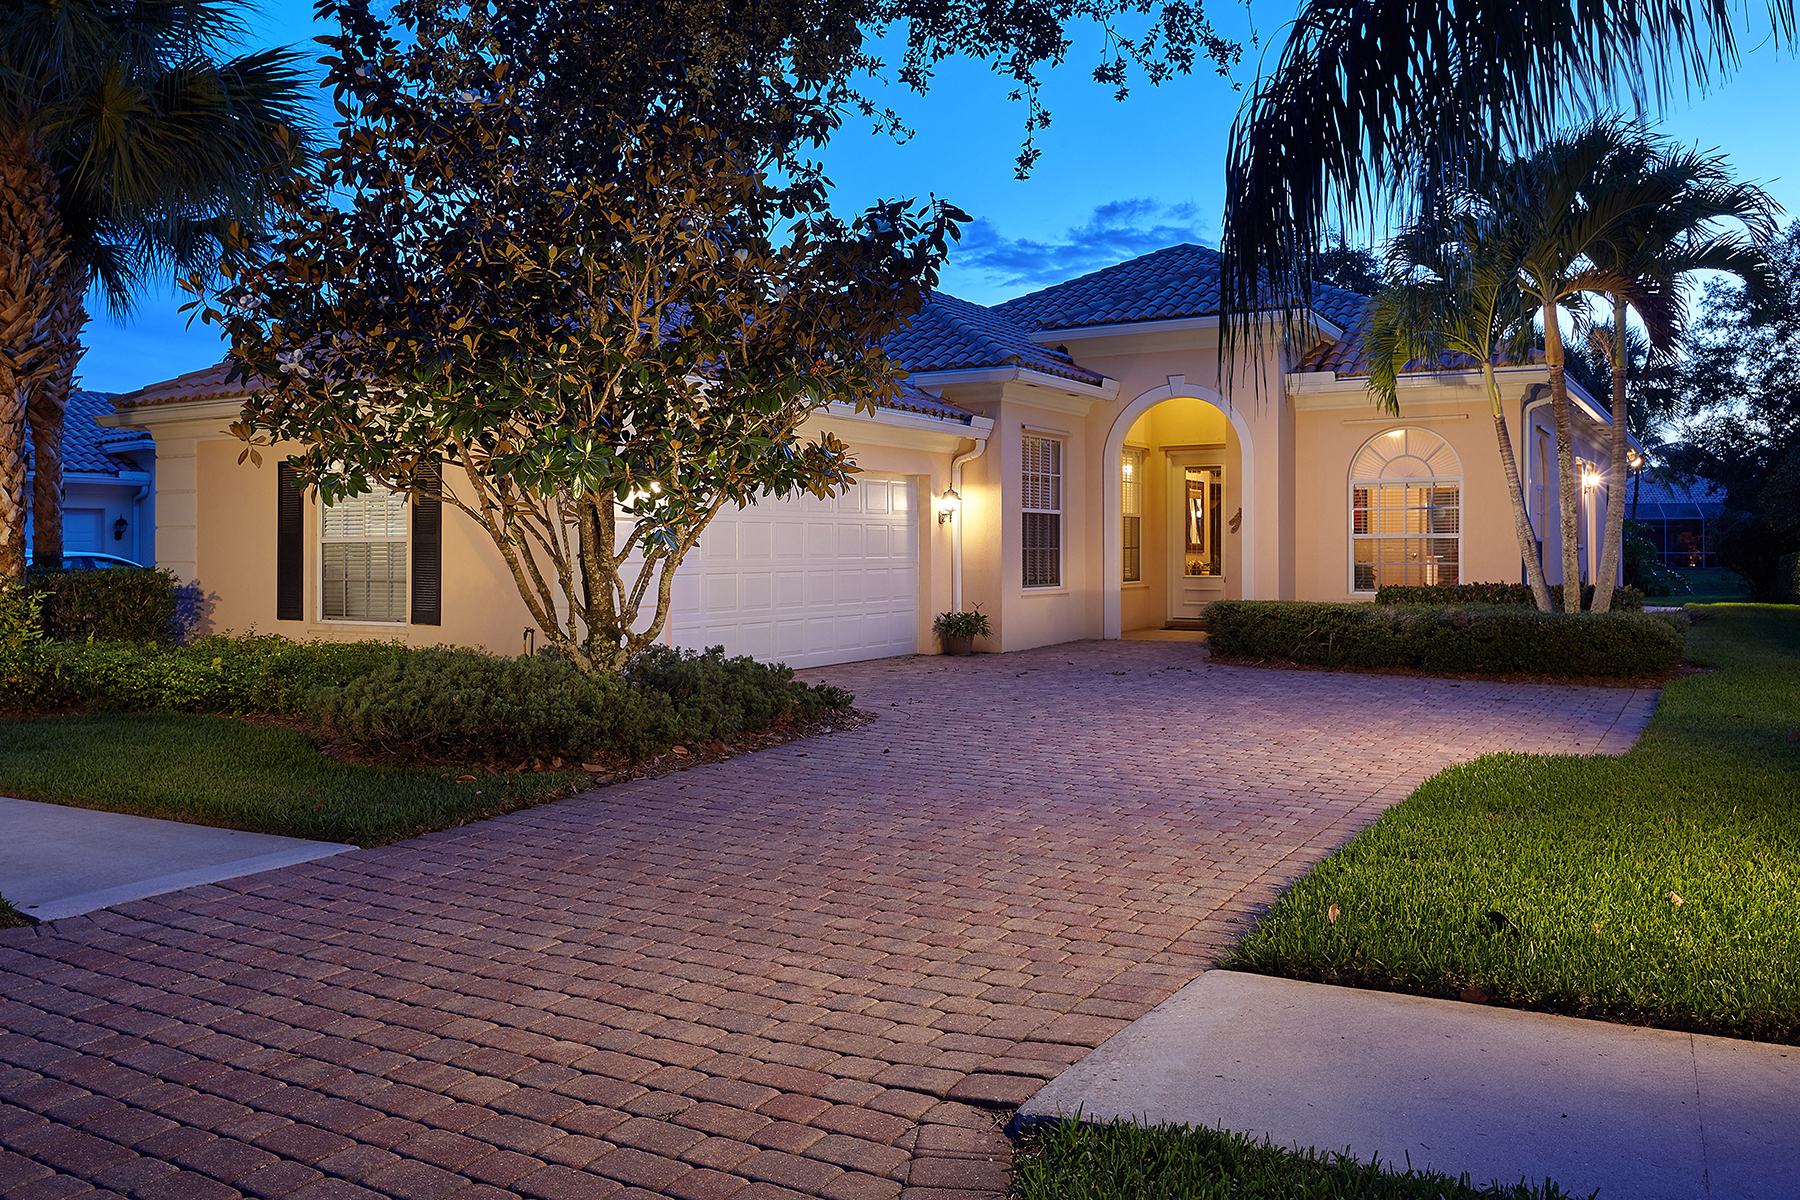 Single Family Home for Sale at ISLAND WALK NAPLES 2930 Gilford Way Naples, Florida, 34119 United States